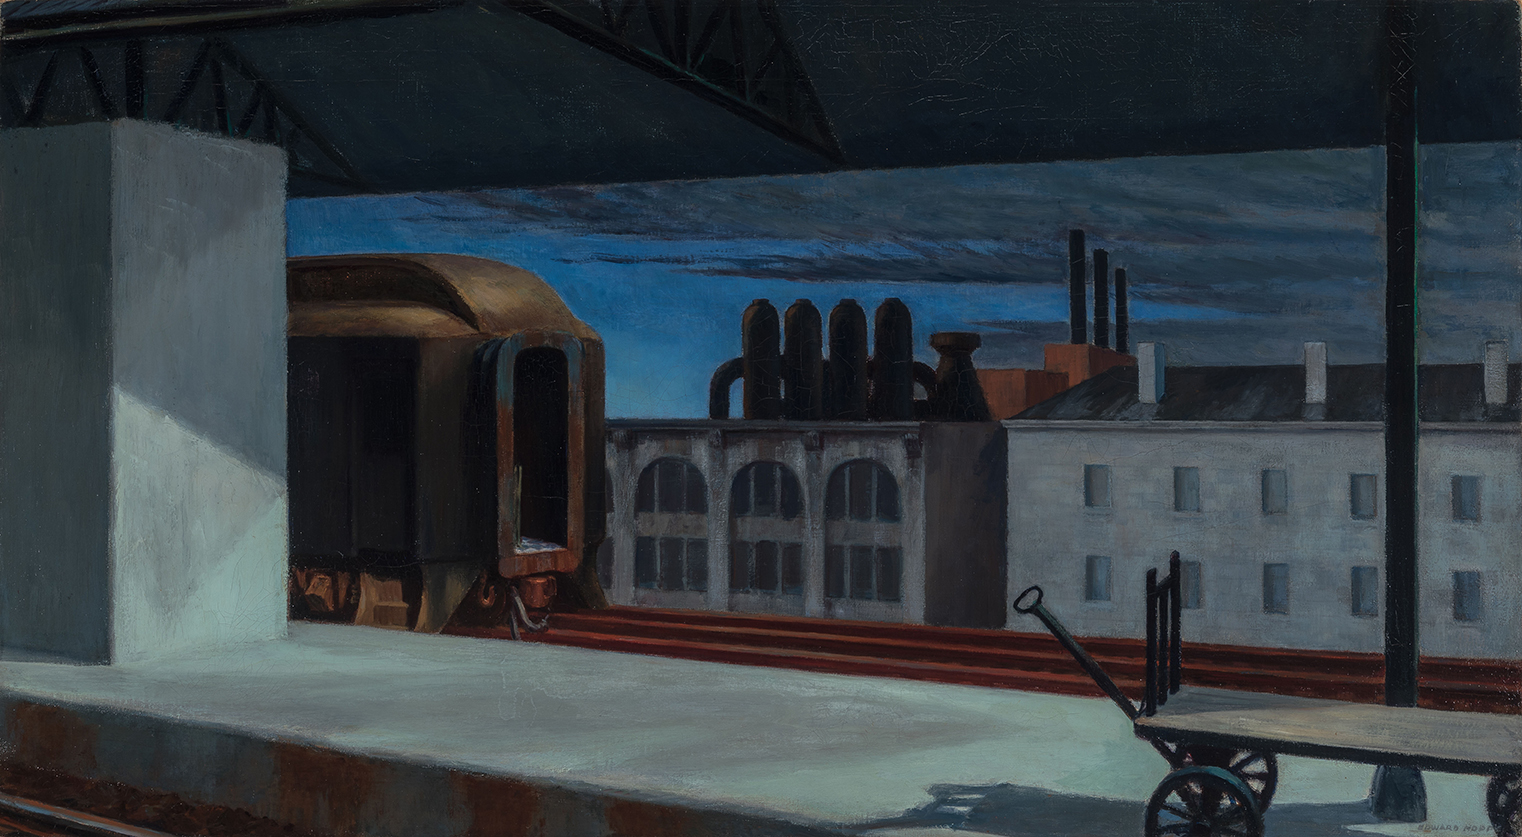 Edward Hopper, Dawn in Pennsylvania, 1942, on show in America's Cool Modernism at the Ashmolean until 22 July © Heirs of Josephine N. Hopper, licensed by the Whitney Museum of American Art